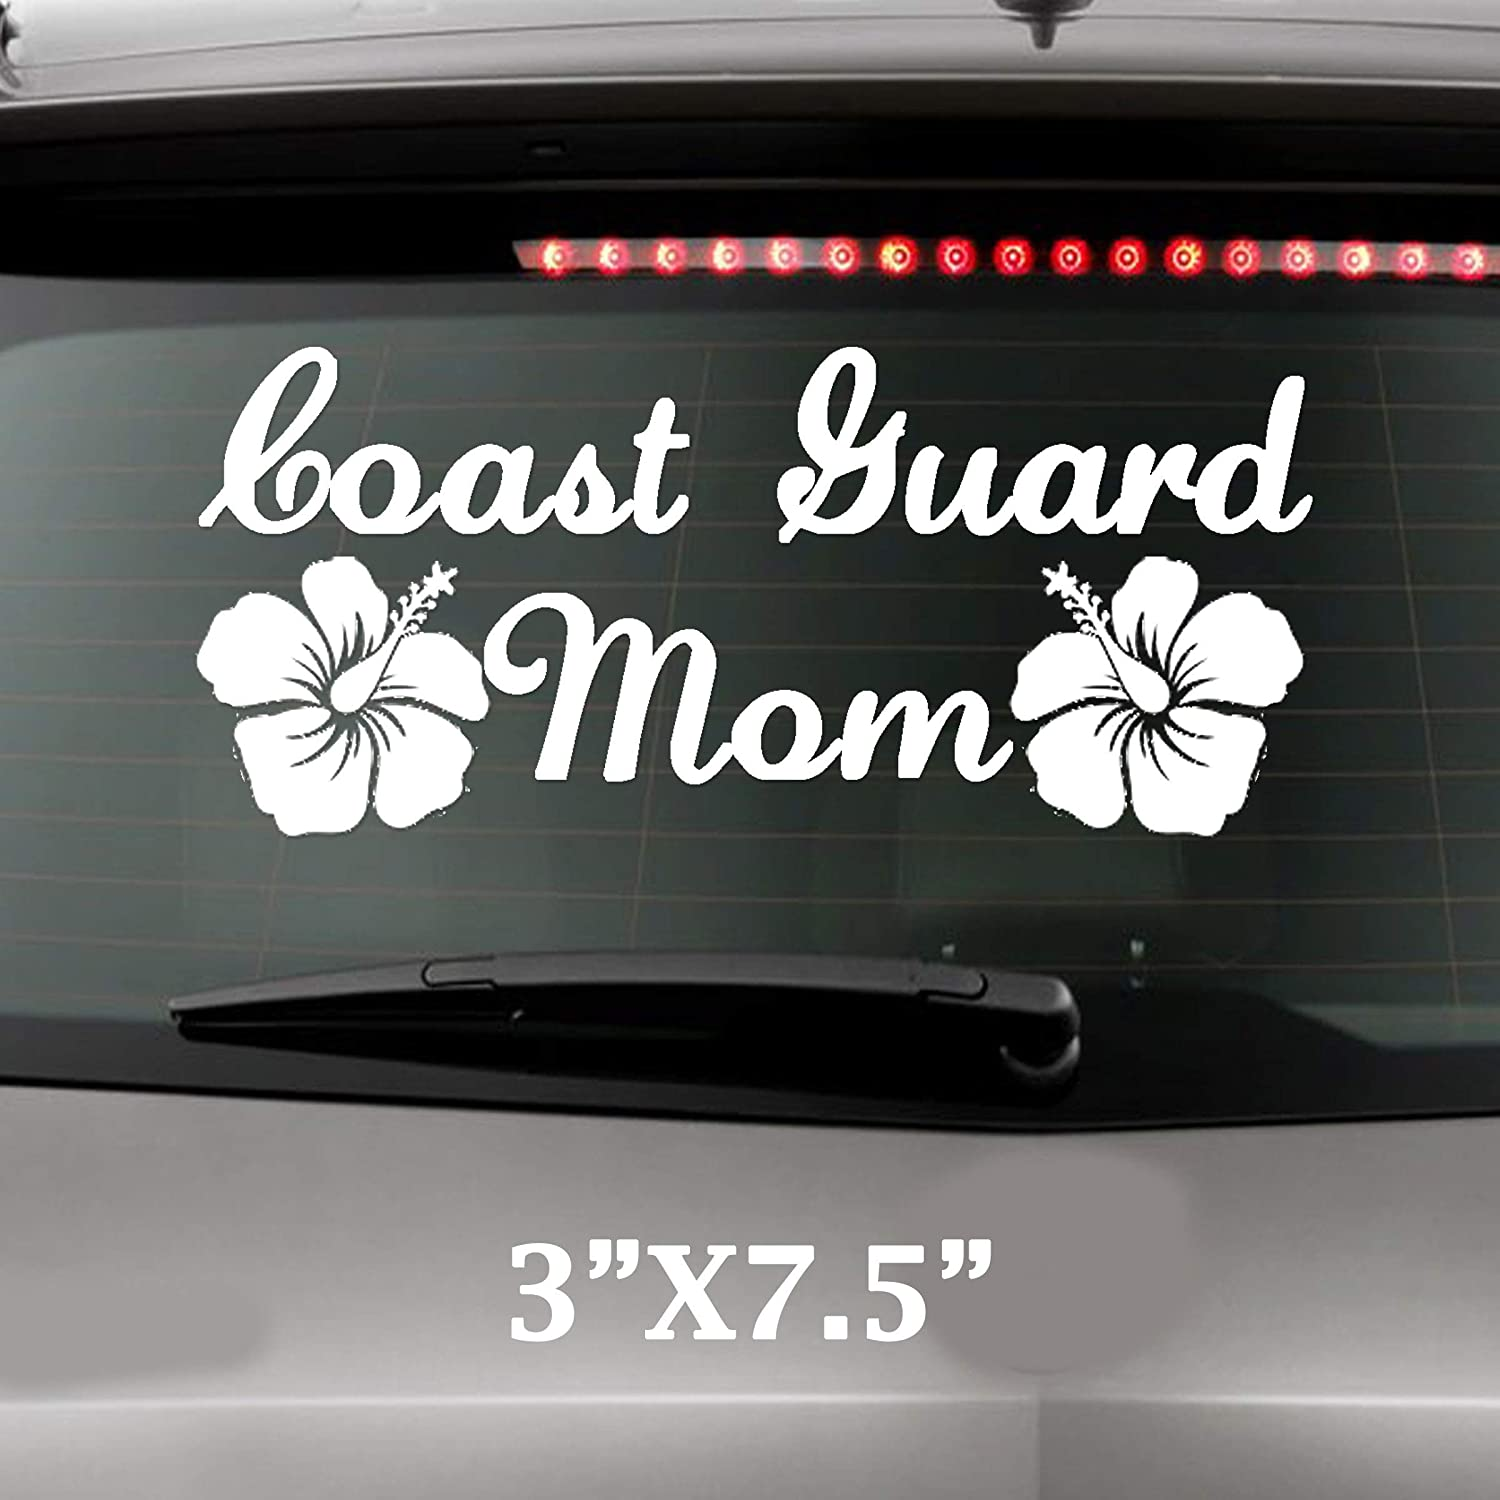 Coast Guard Mom With Hibiscus Flowesr Military United States Solider Decal